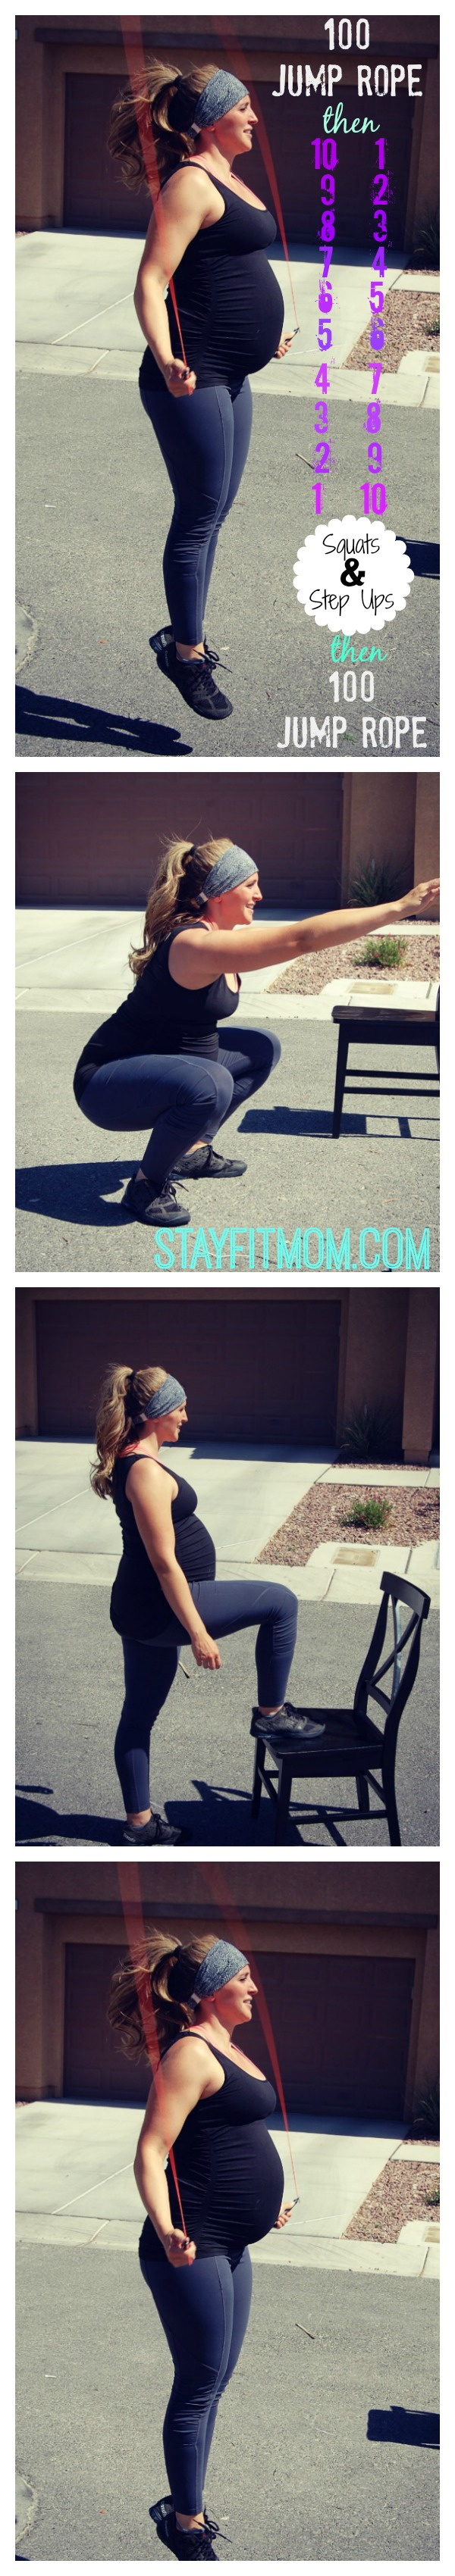 CrossFit workouts for women (even pregnant mamas) from StayFitMom.com.